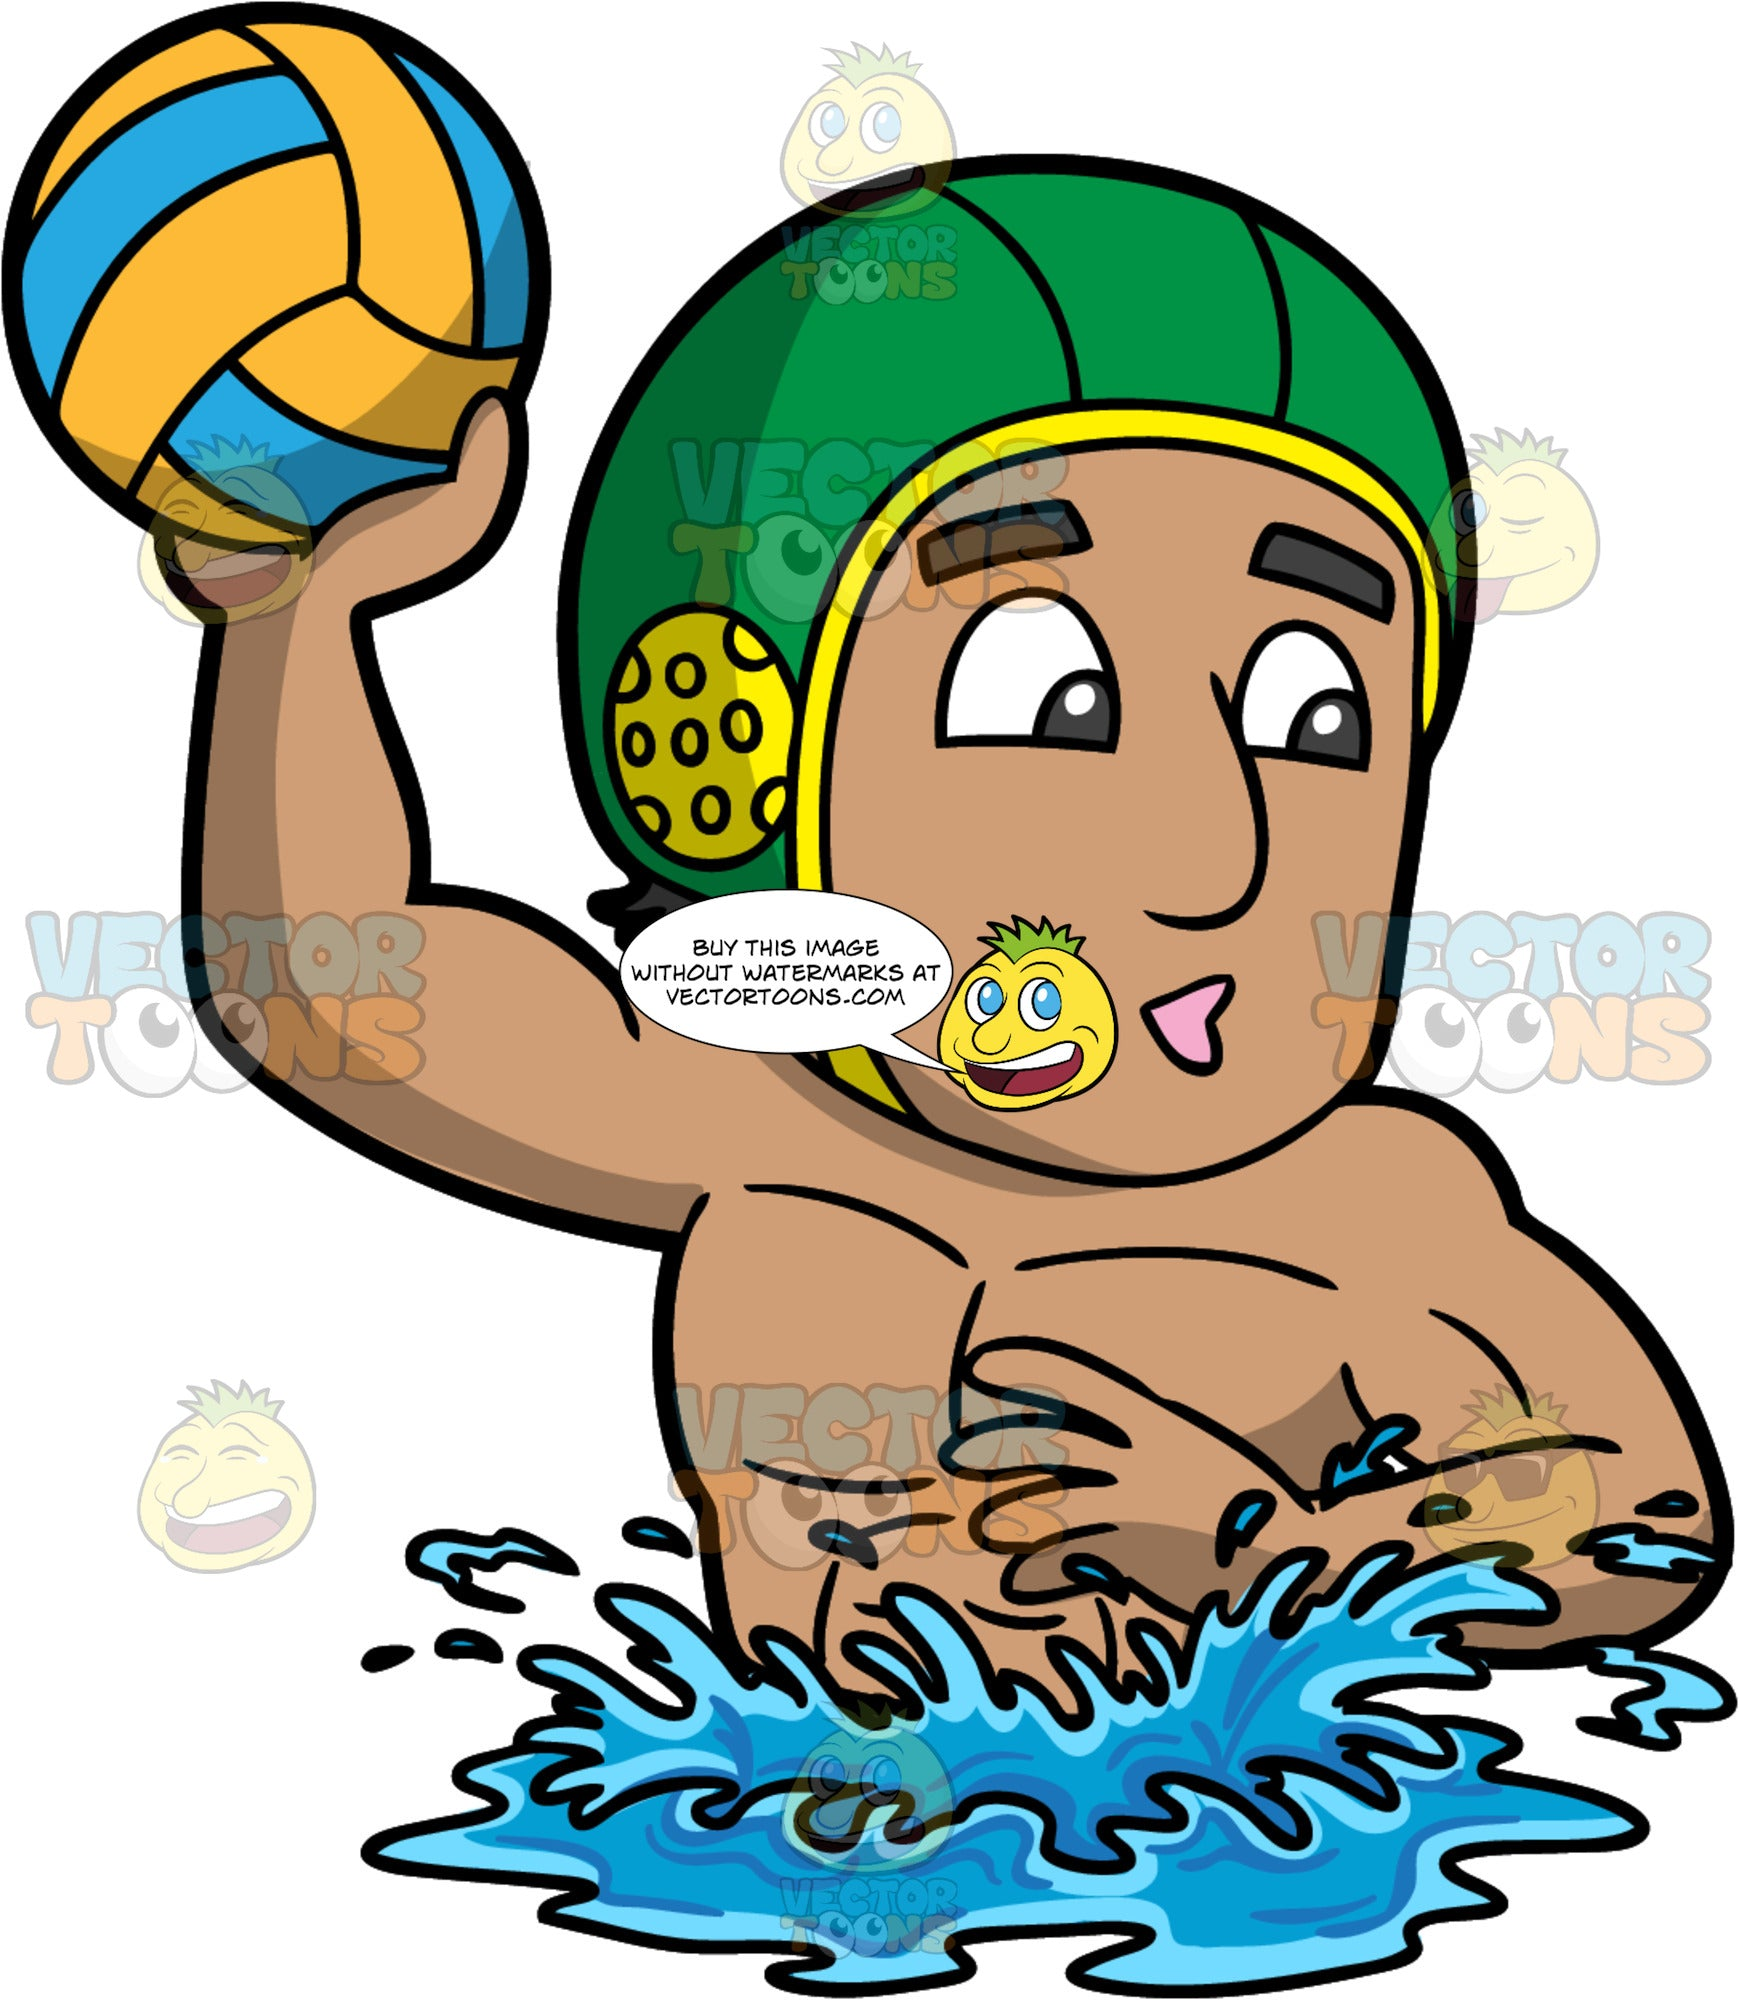 A Man Holding A Water Polo Ball. A man with light brown skin, wearing a green water polo cap, treads water as he holds onto an orange and blue water polo ball and looks for someone to throw it to